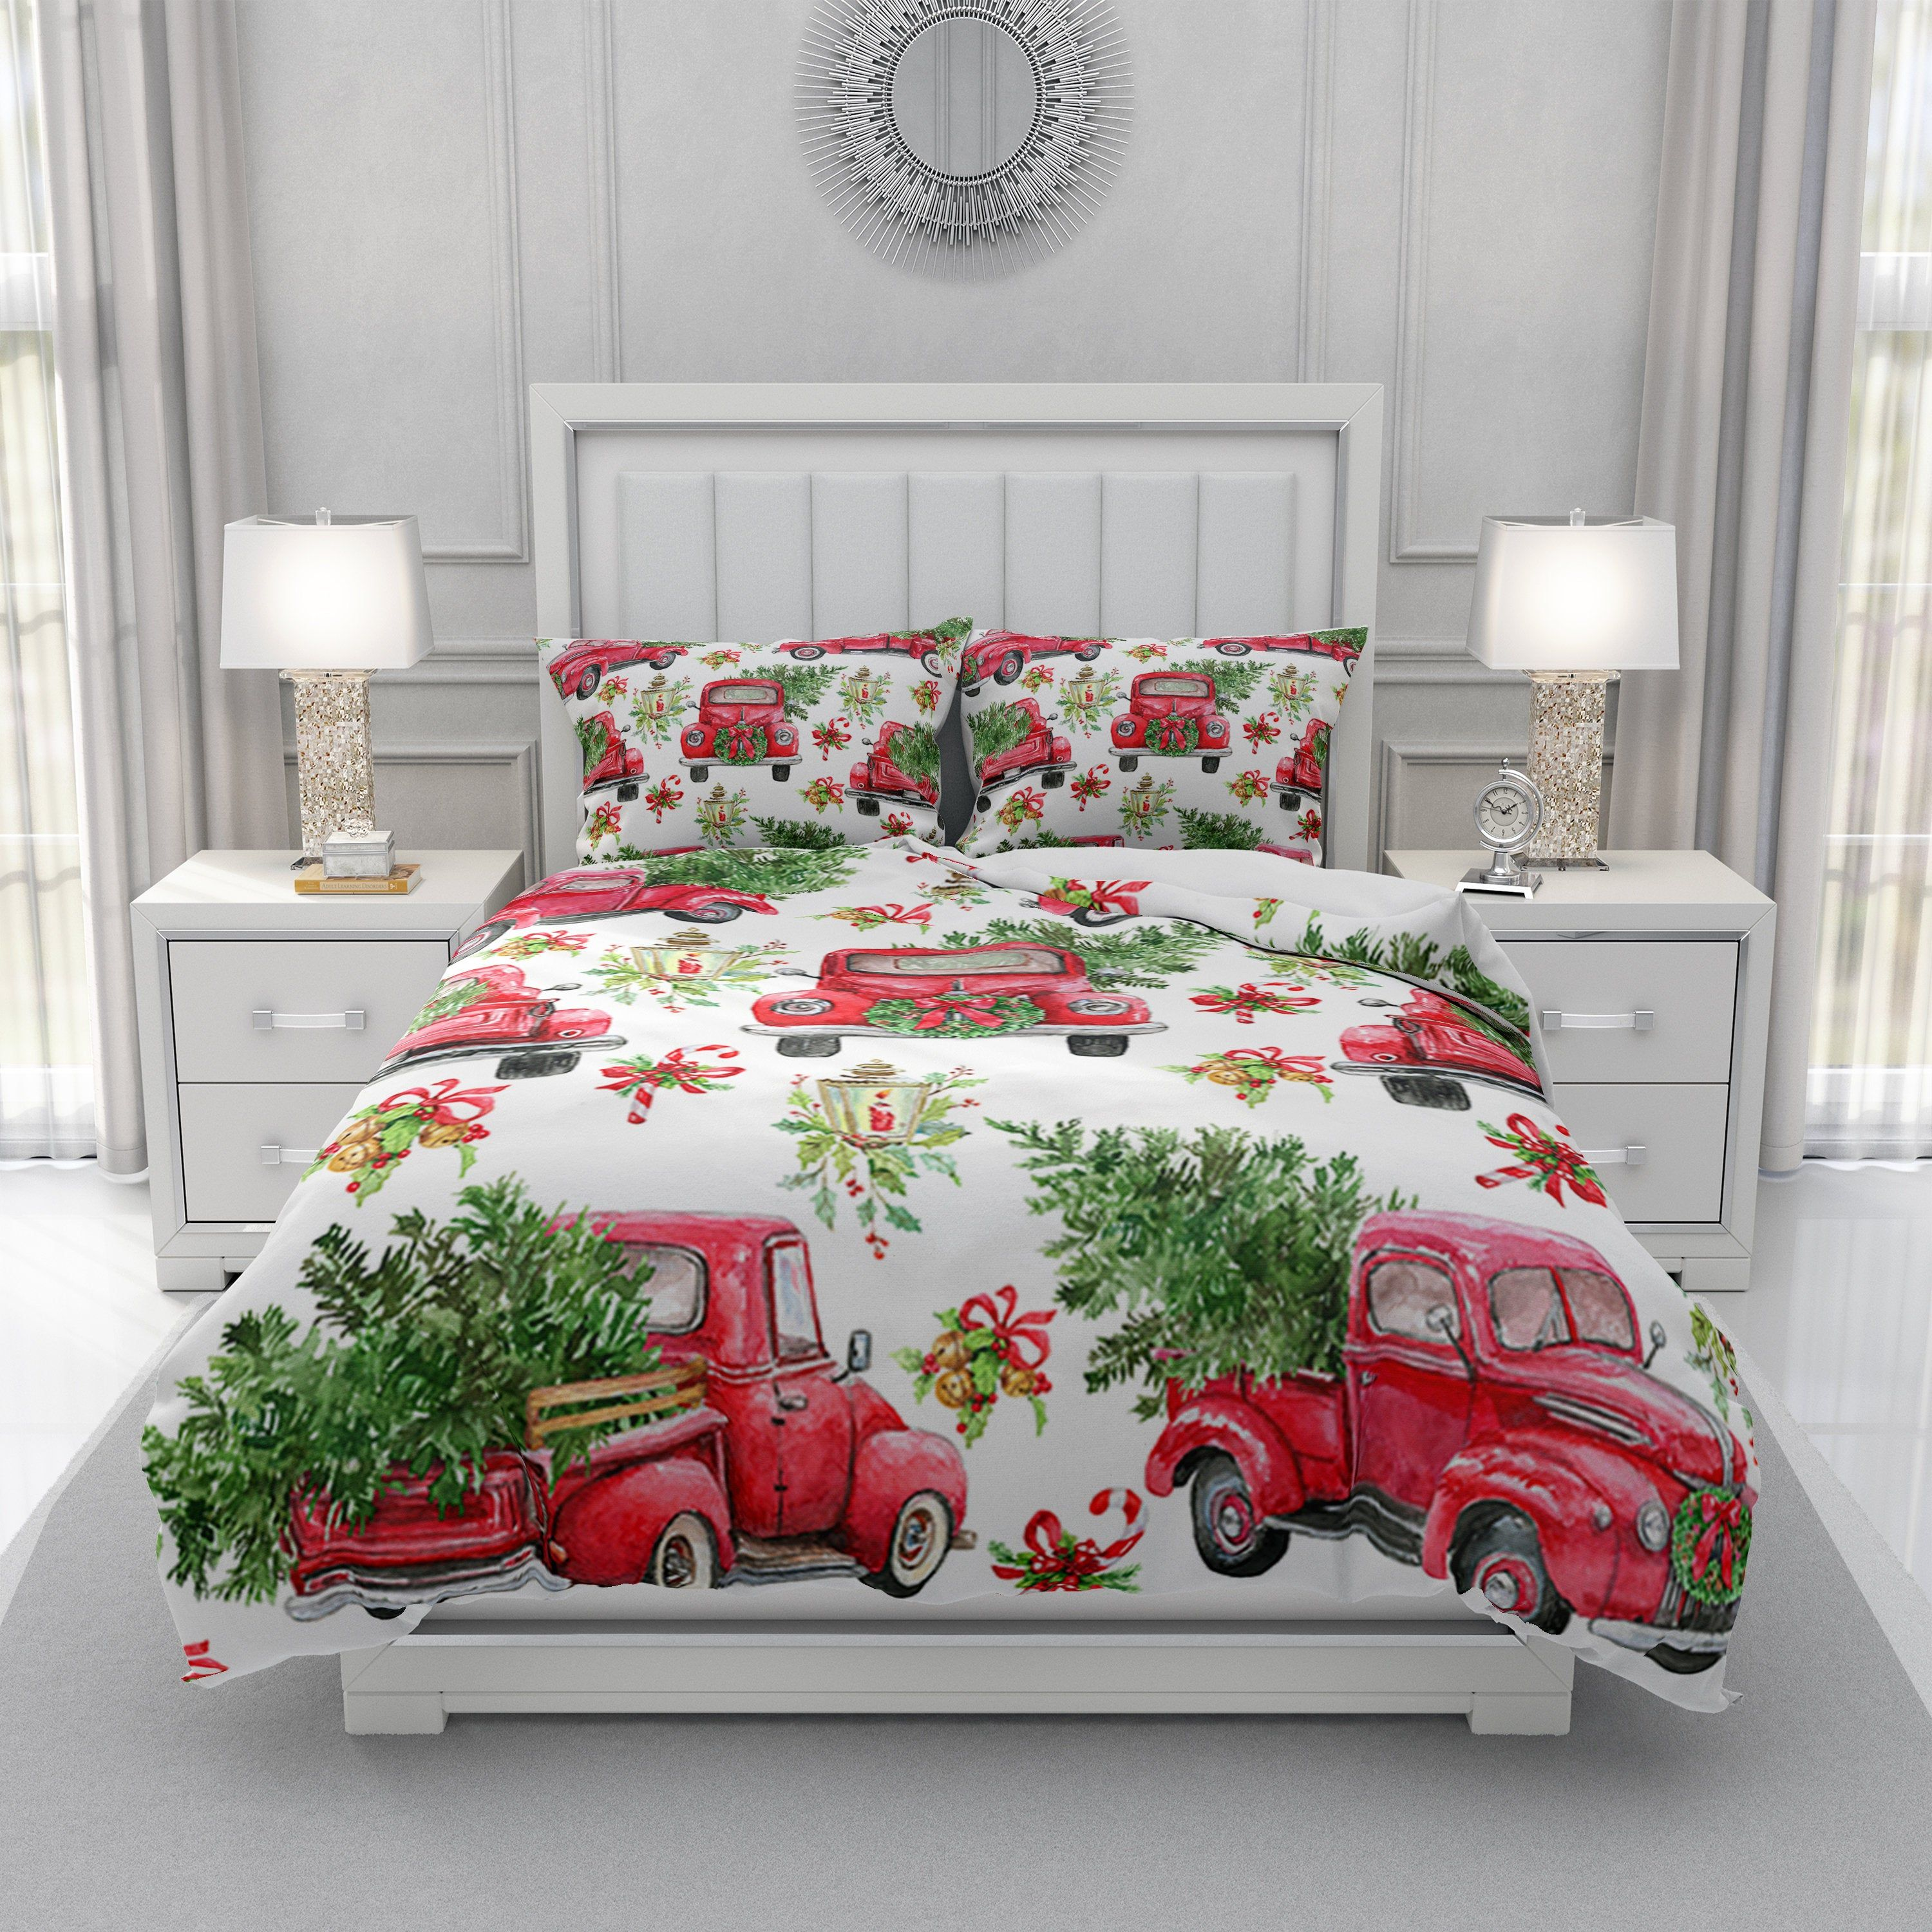 Christmas Bedding Set, Red Truck With Christmas Trees